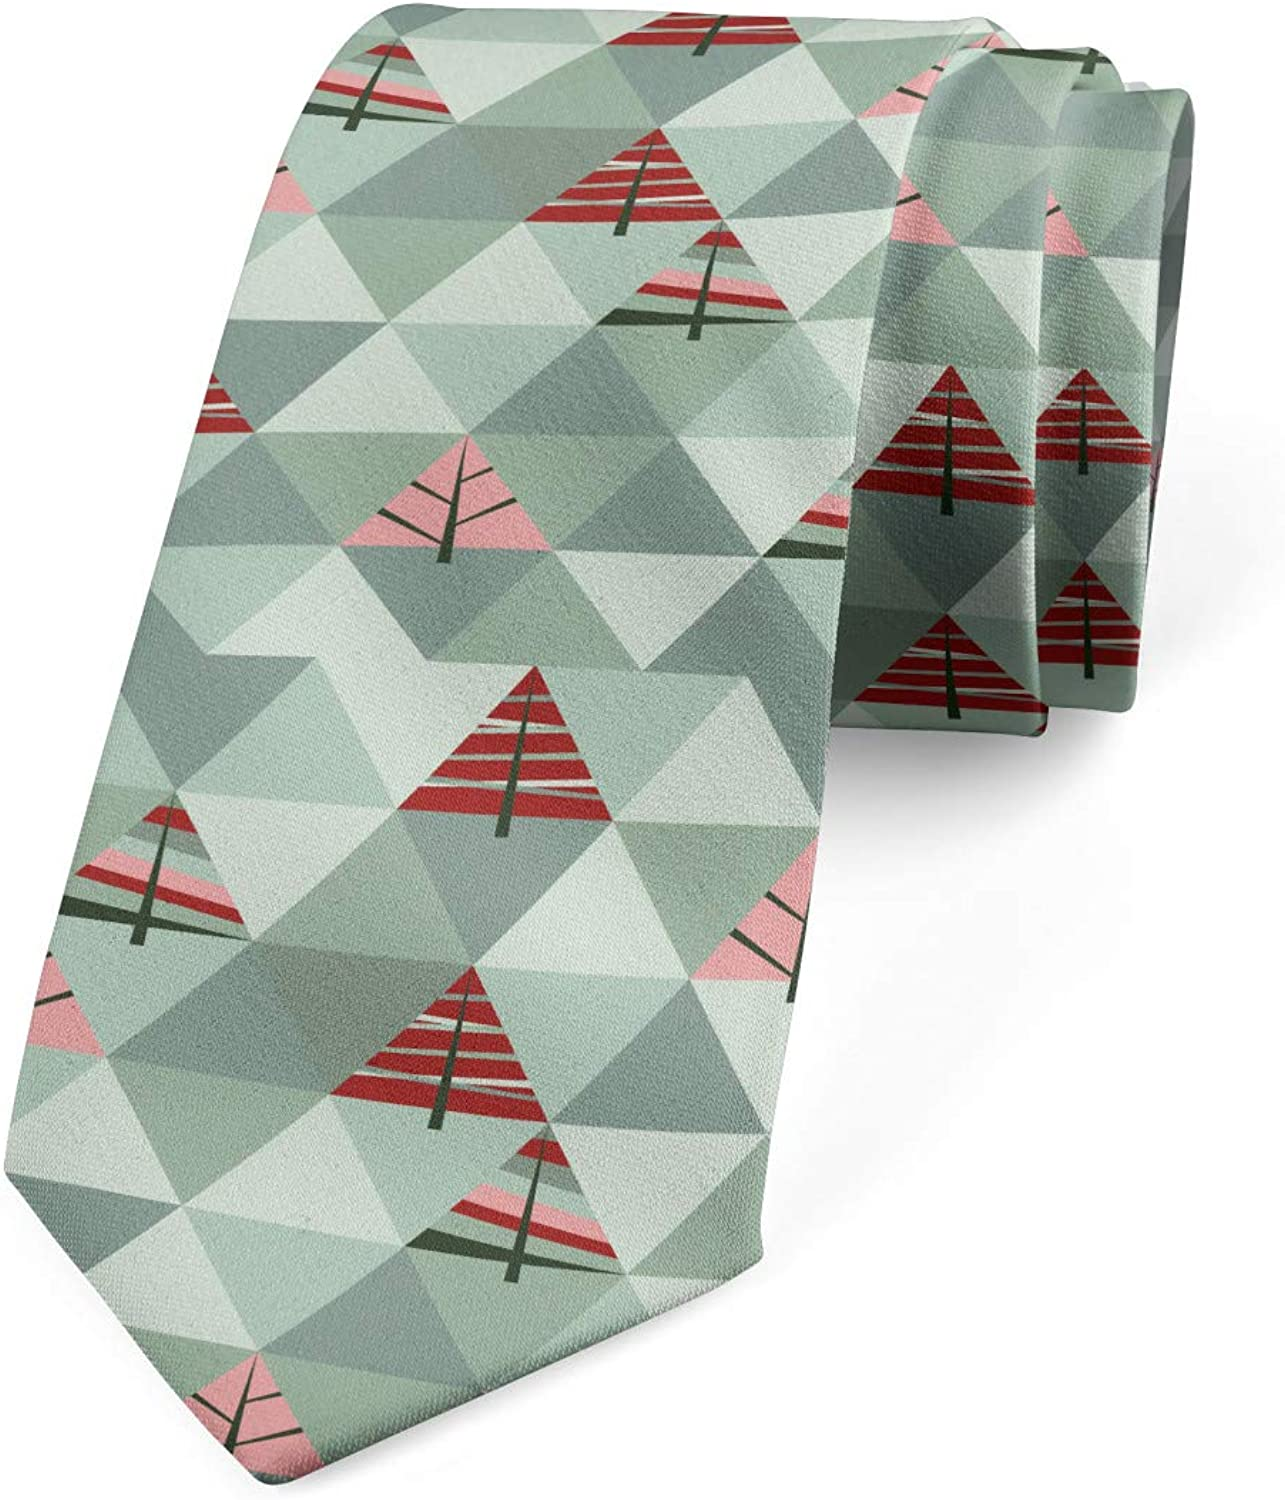 Illustration of Triangles Ambesonne Necktie Coral and Reseda Green 3.7